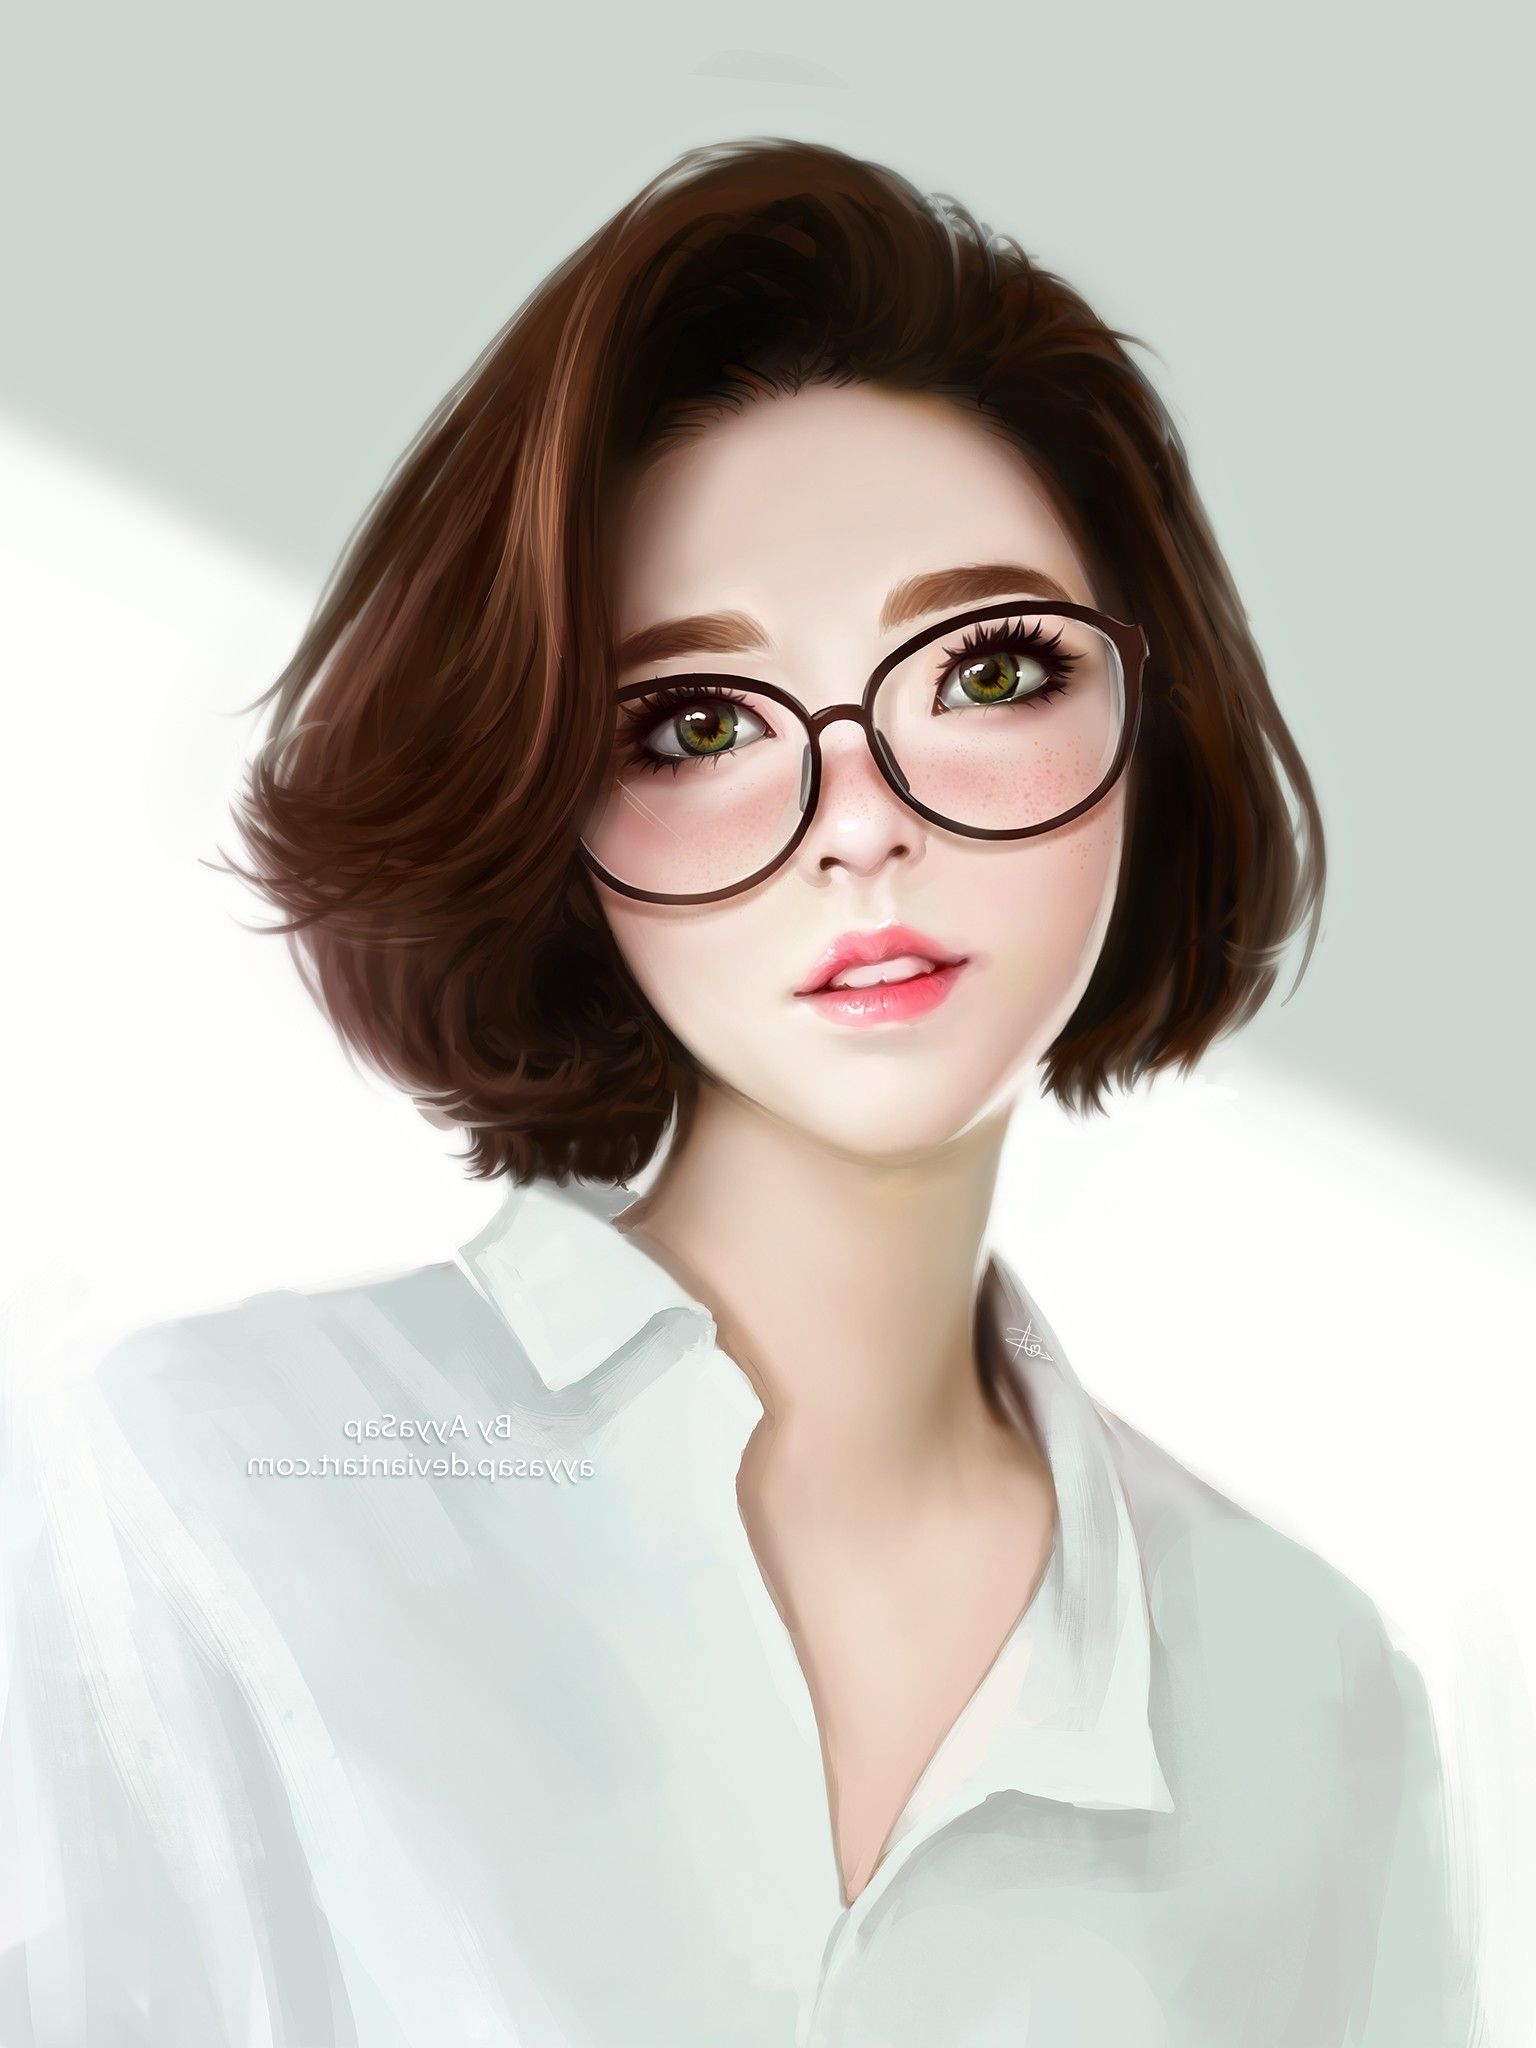 Anime Girls Short Hair Glasses Watermarked | Artwork In 2018 Within Short Hairstyles For Women With Glasses (Gallery 7 of 25)